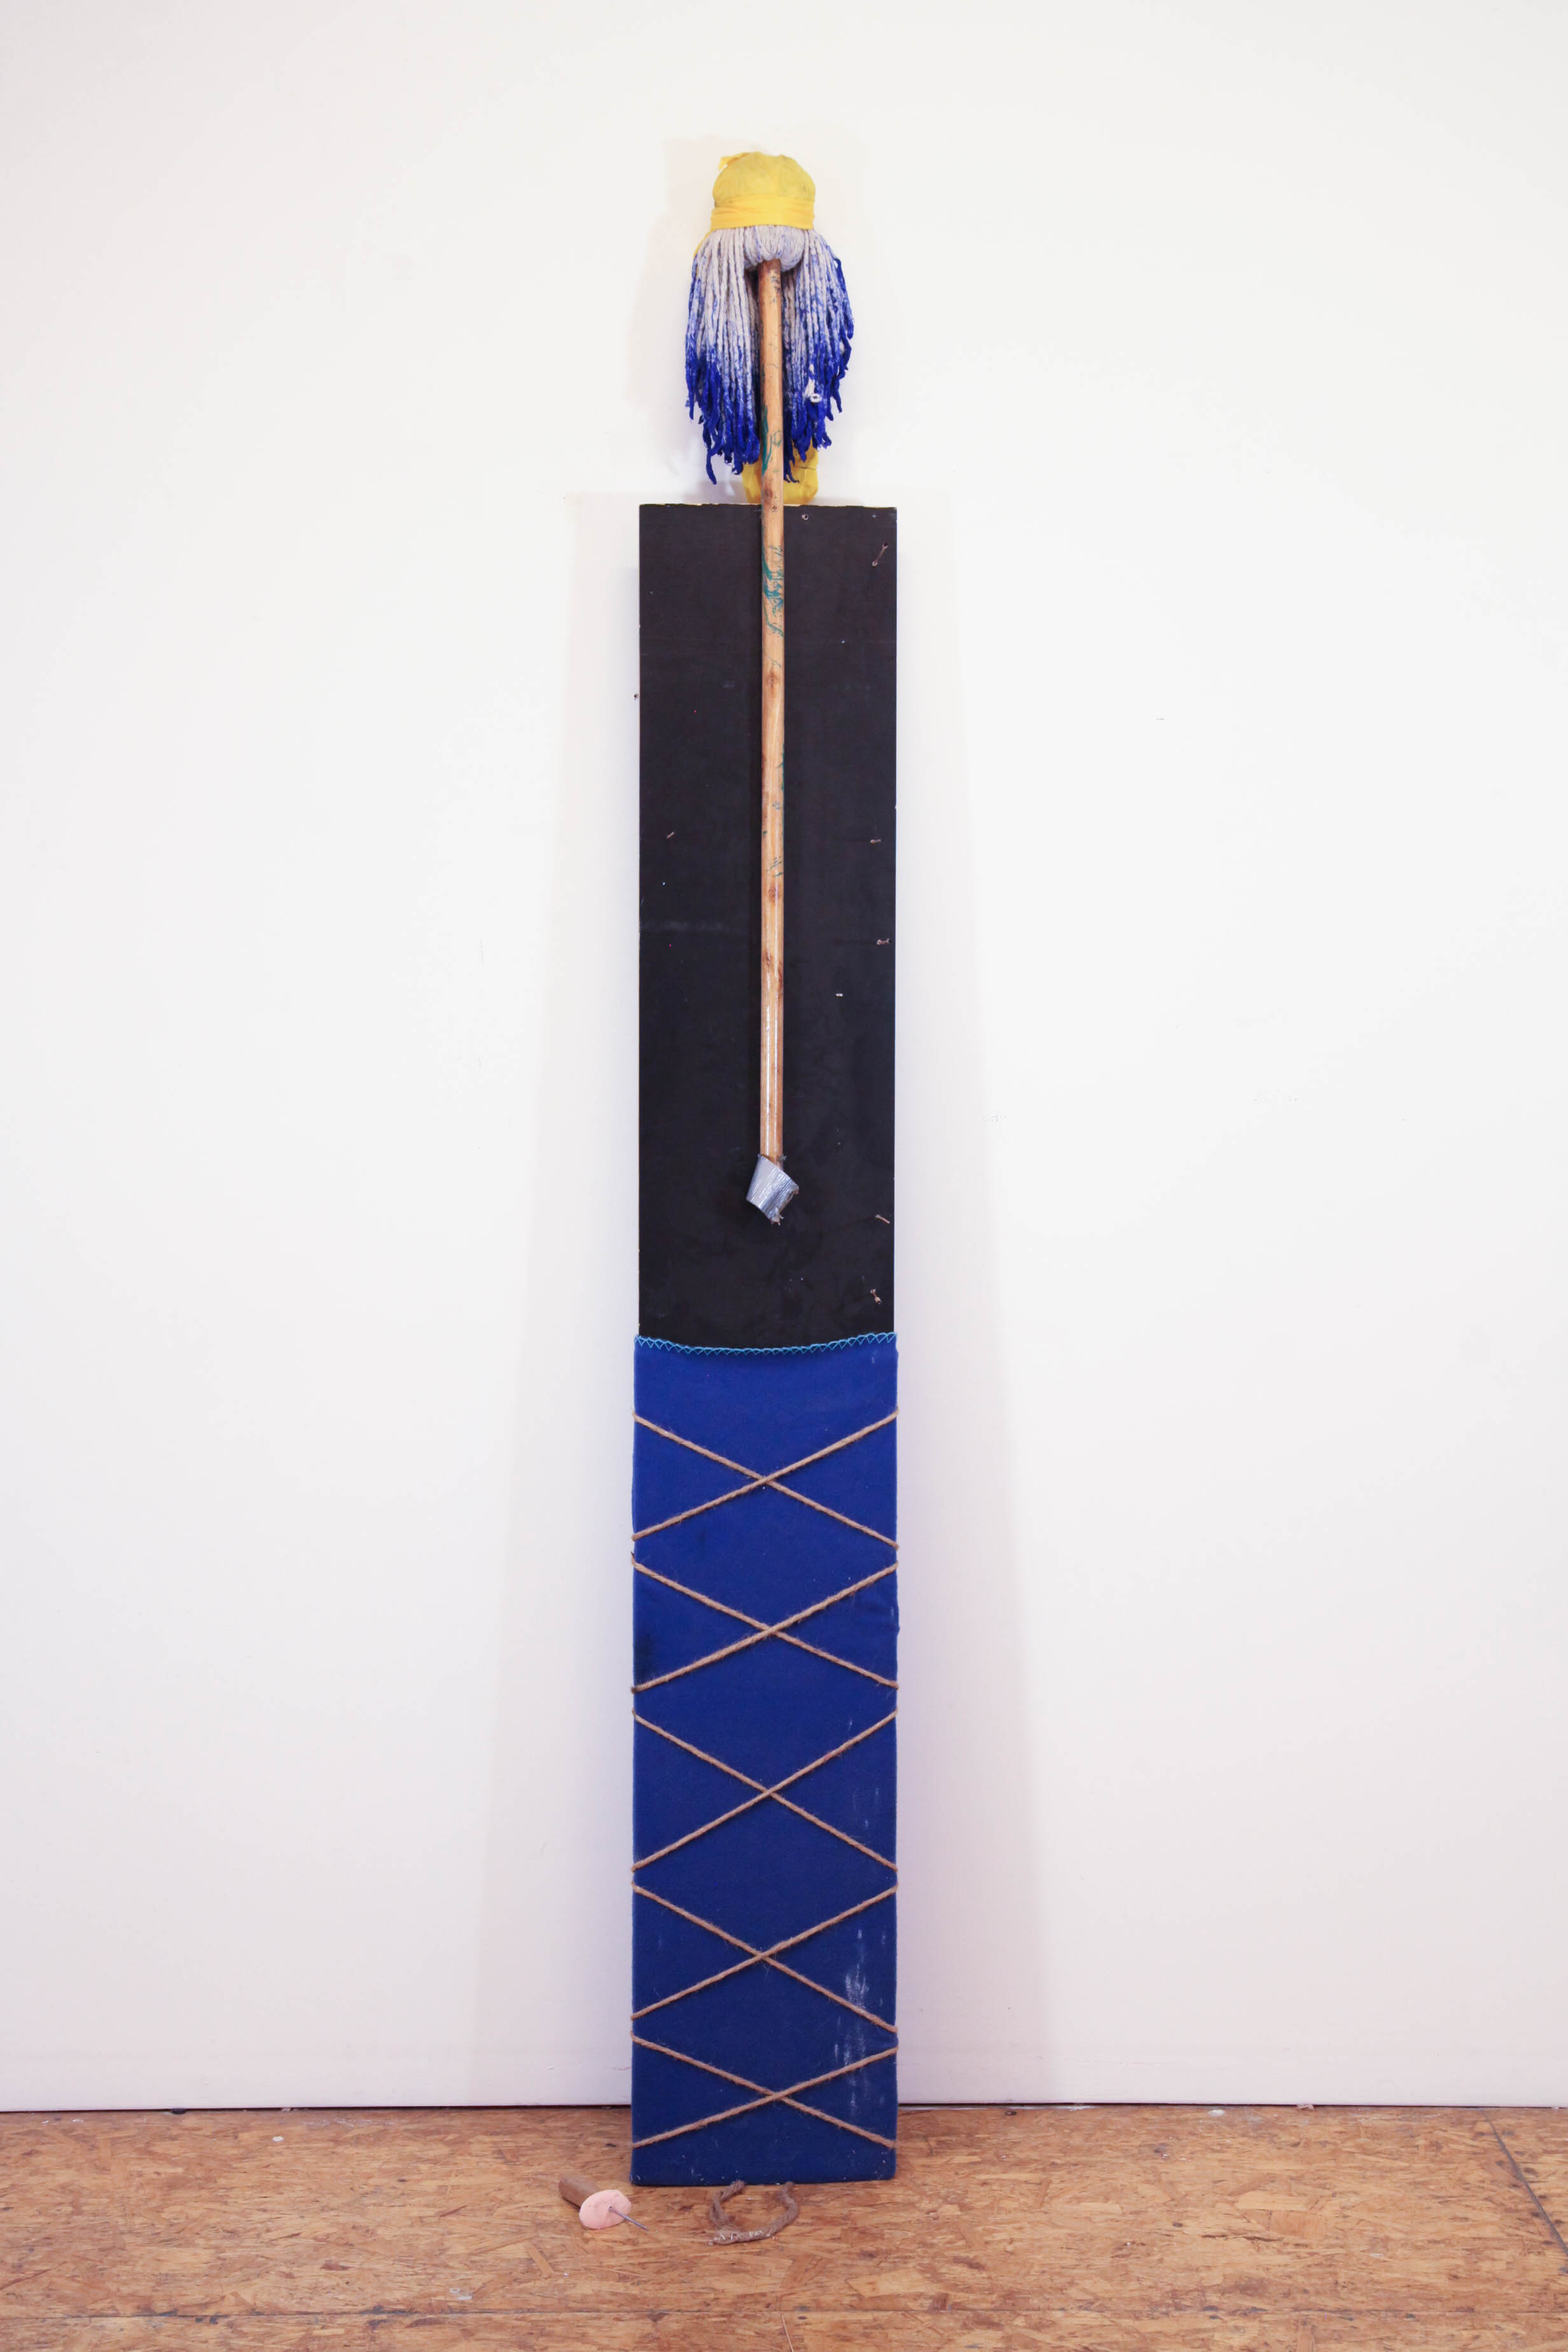 Daniel Gaitor-Lomack  Guardians of the Afro Fantasy (Ice Cold) ,2017 mop head, ice pick, soap, rope, blanket, duck-tape, Bavarian plywood 86 x 12 x 14 in.